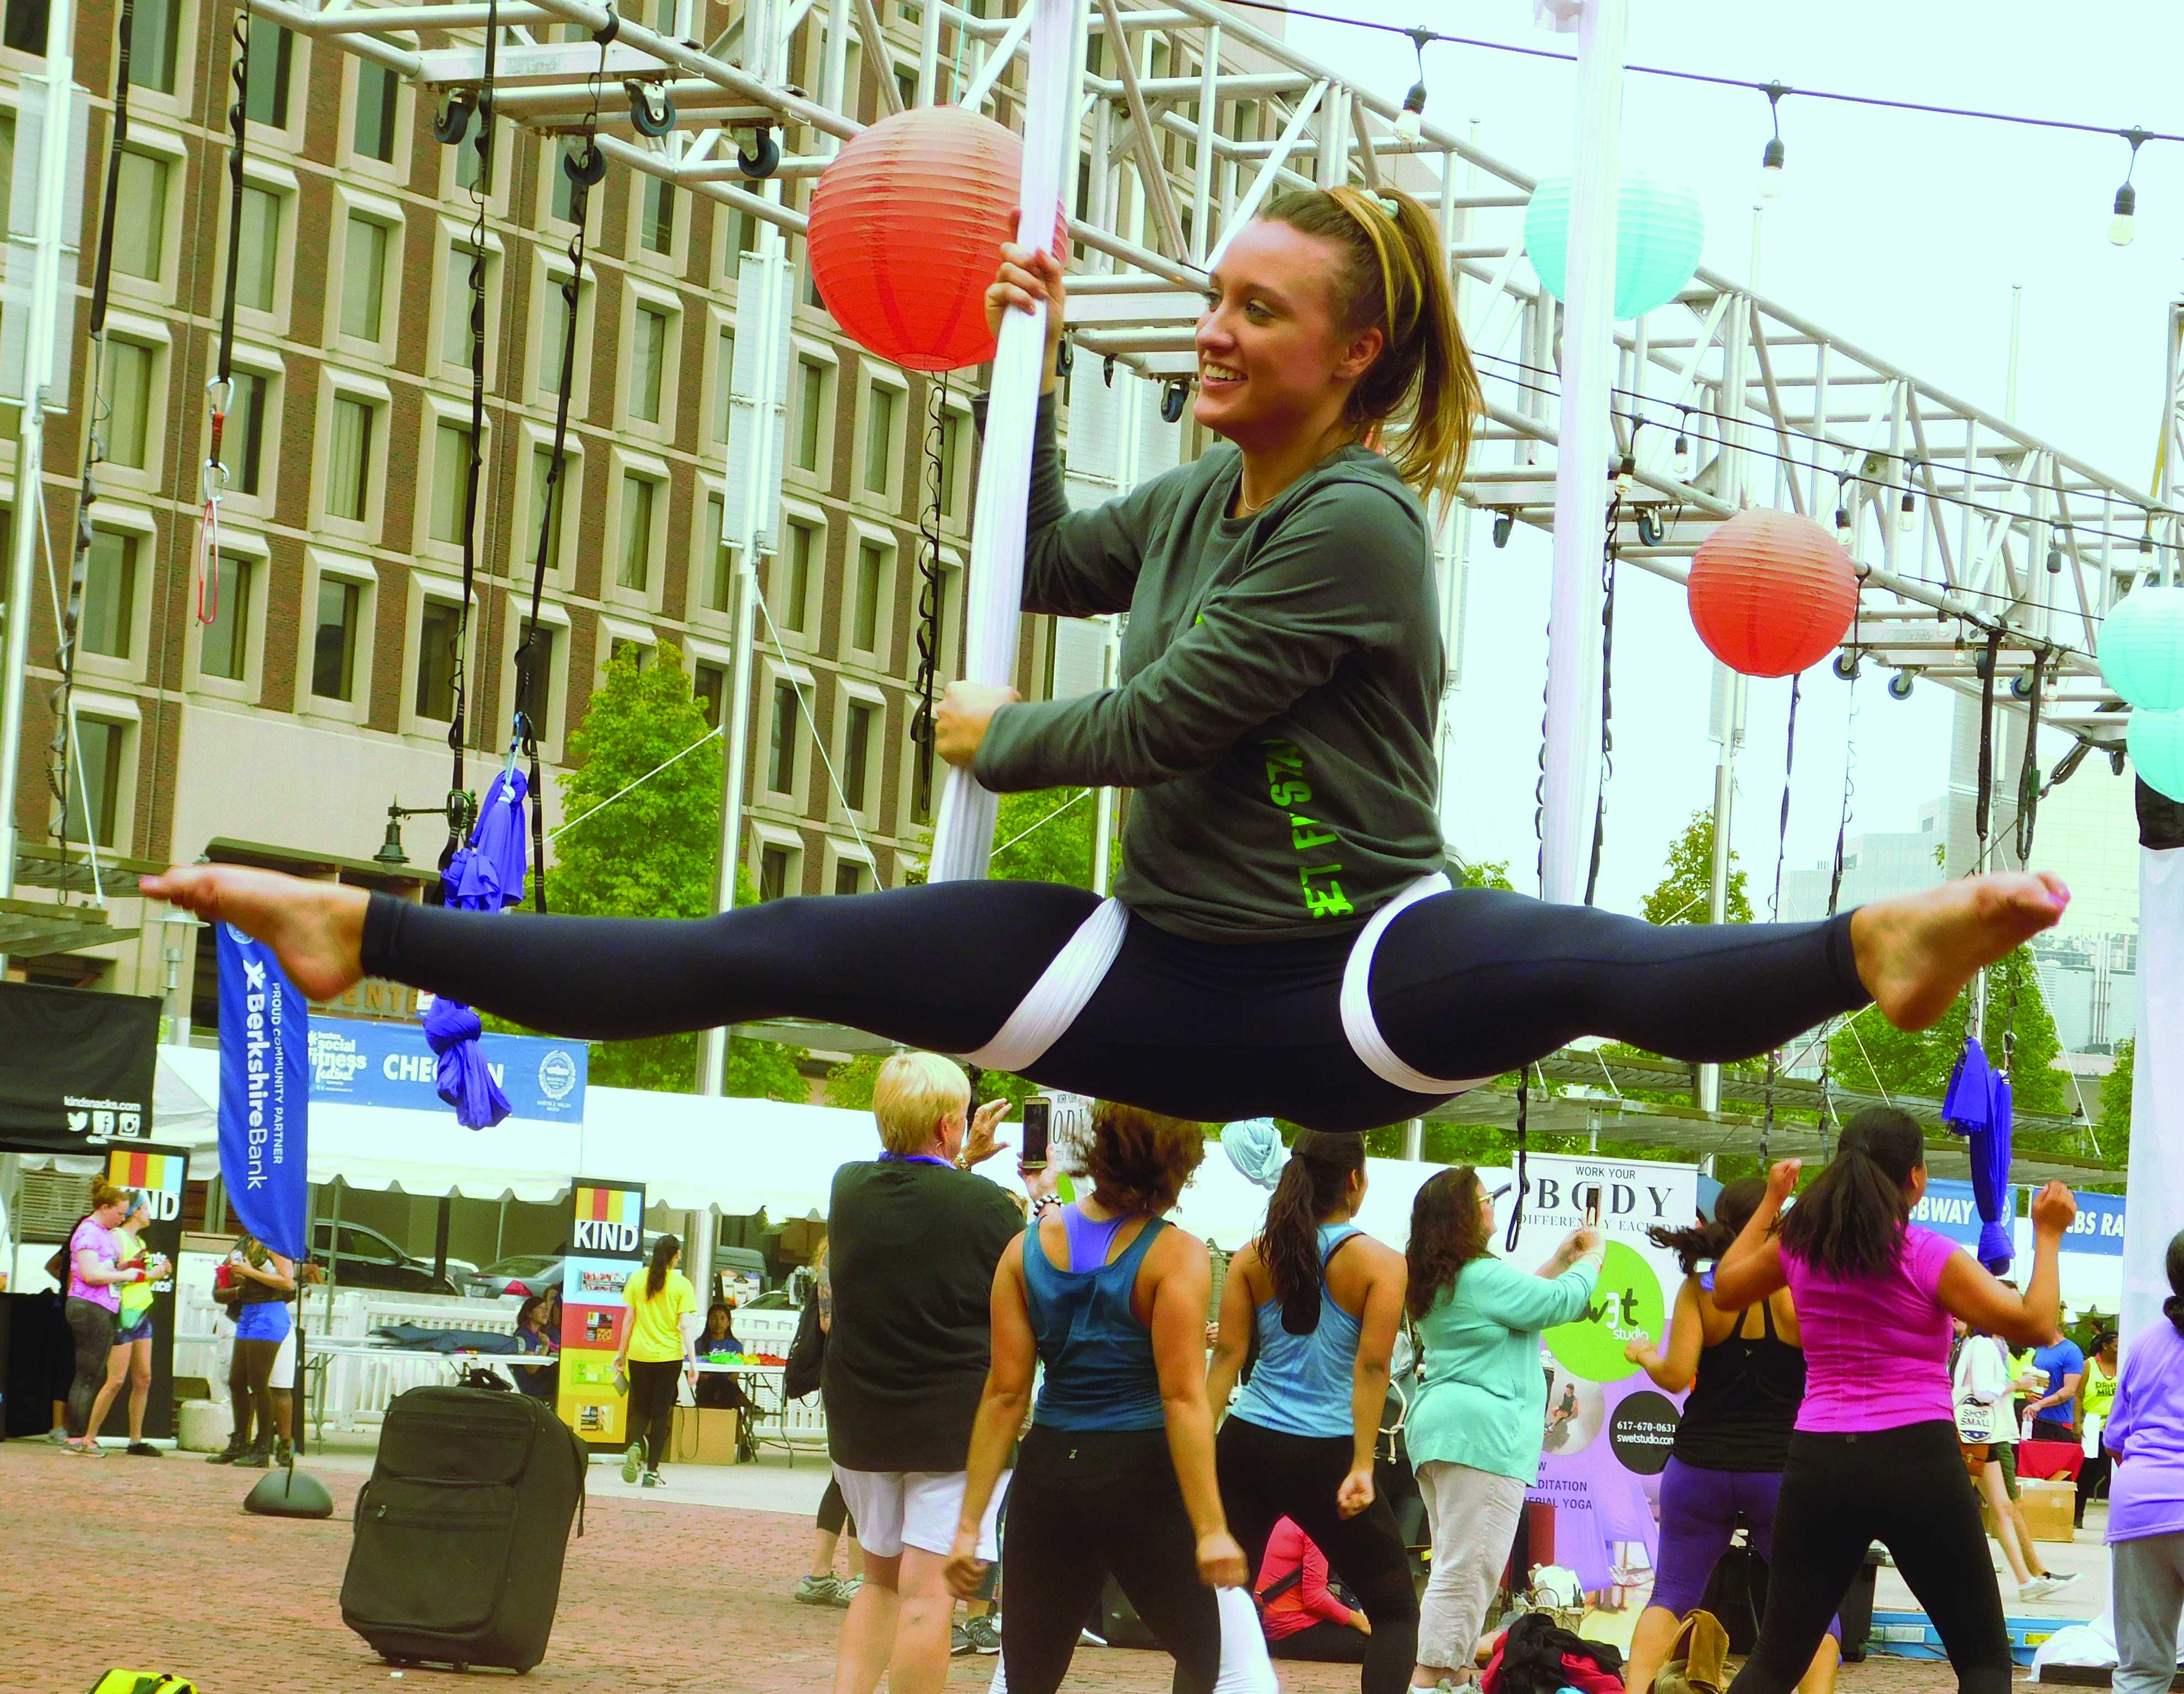 Swet Studio flies high at Boston Social Fitness Festival